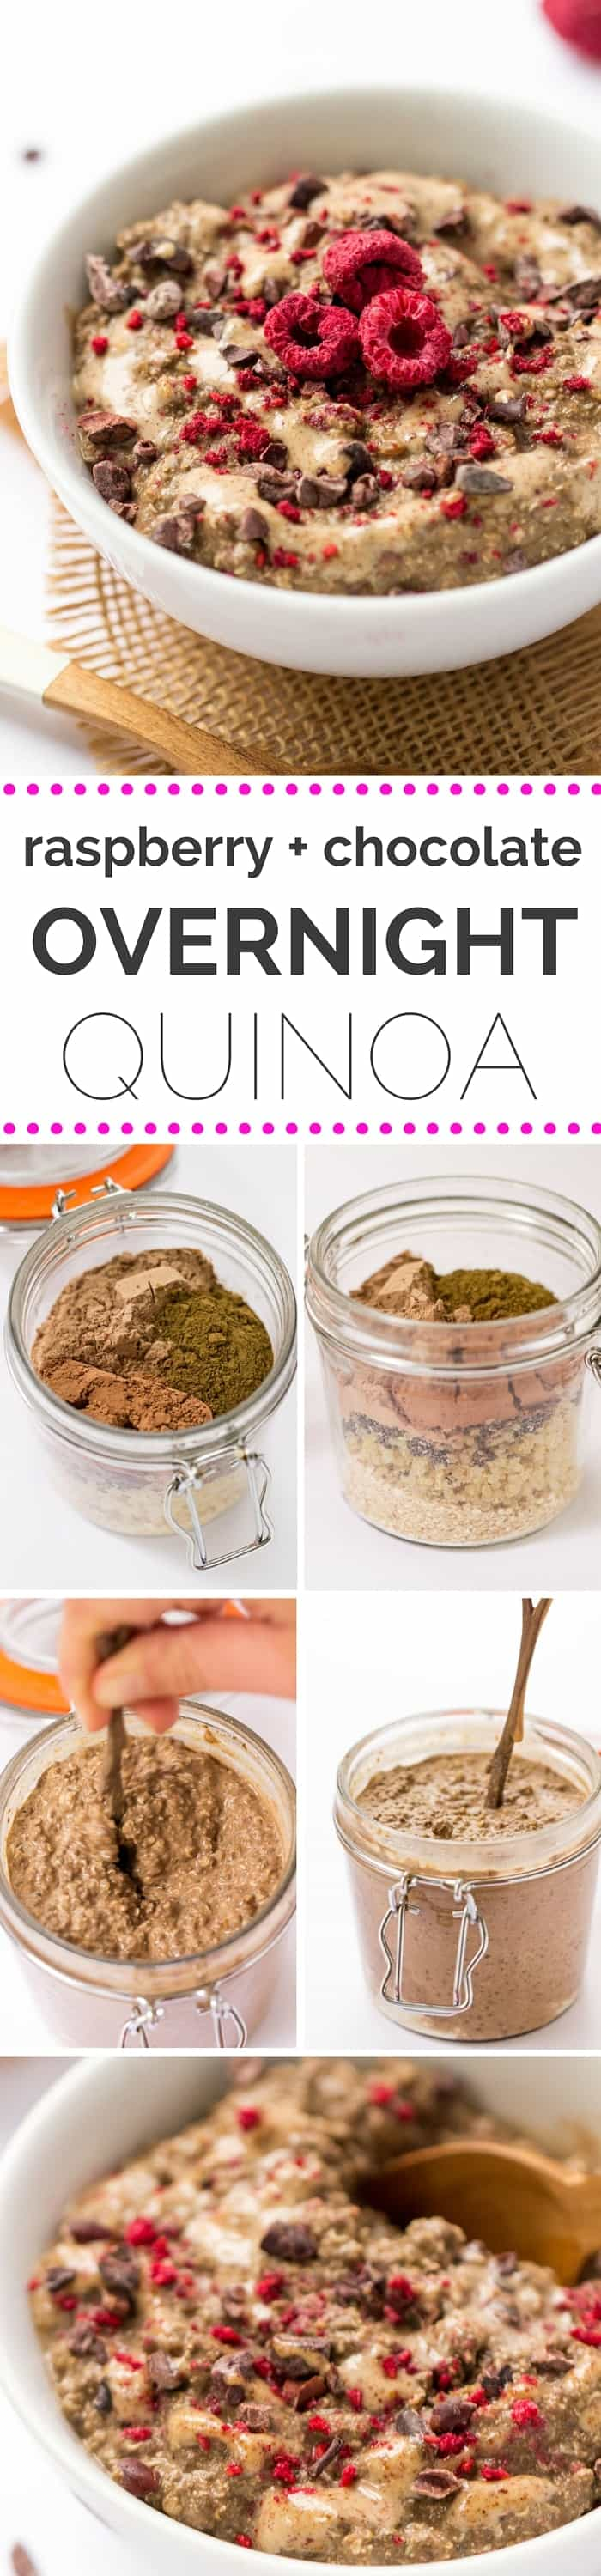 Getting bored of overnight oats? Time to try OVERNIGHT QUINOA! Higher protein, faster to make and every bit as delicious (especially when chocolate is involved) -- gluten-free + vegan